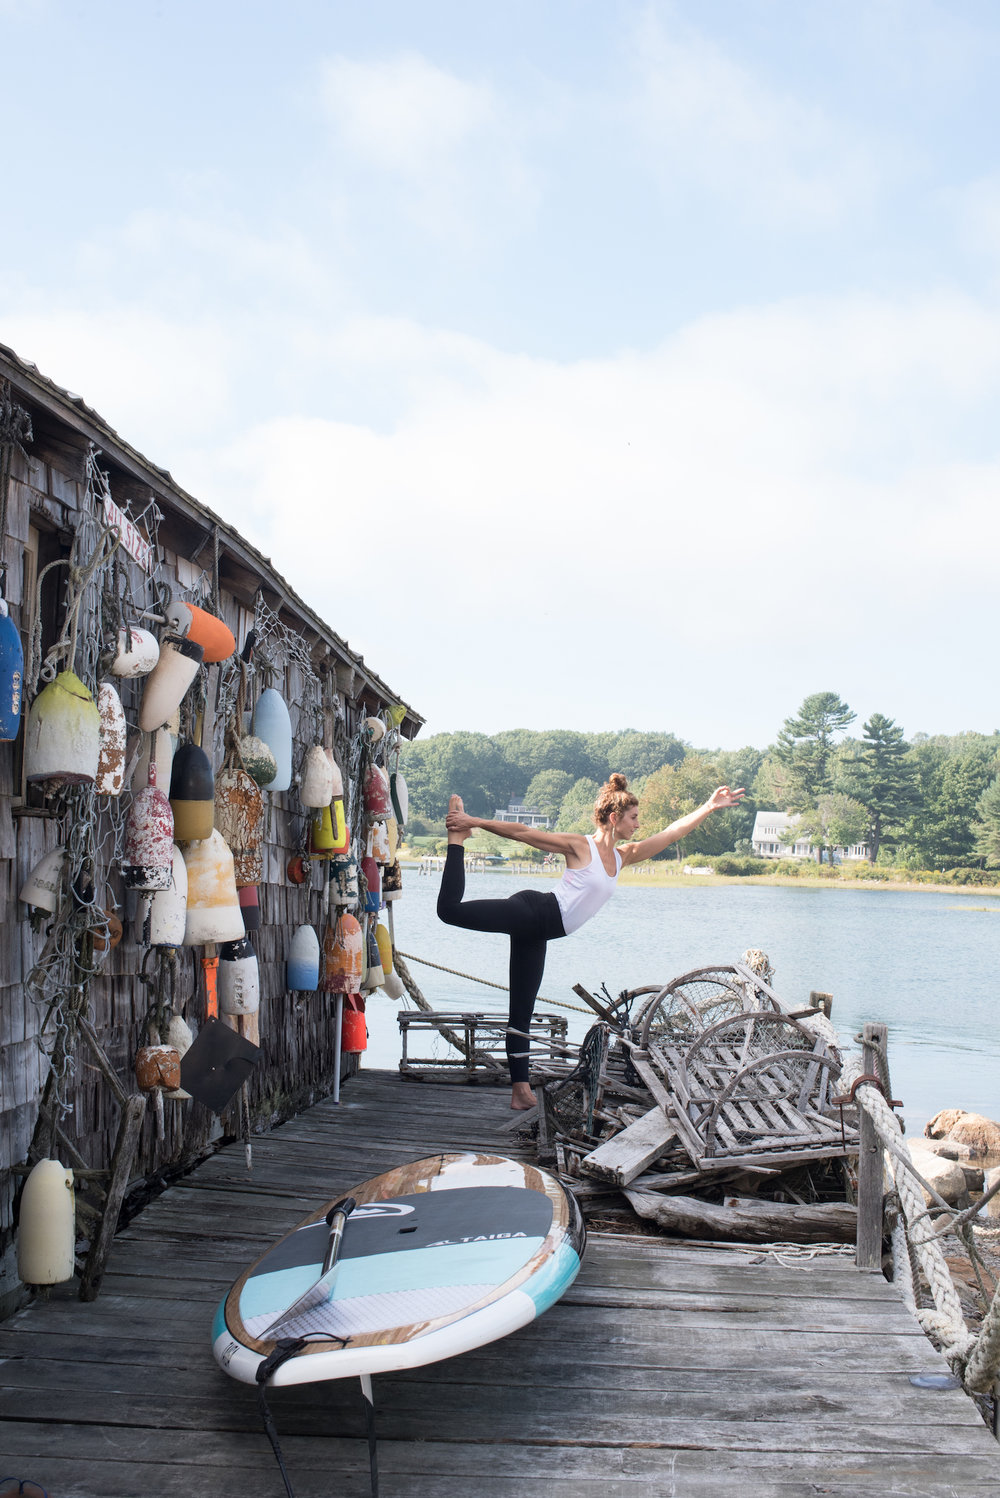 40H SUP YOGA TEACHER TRAINING - Bring your teaching skills off the mat & connect to the marvel sensations of the elements